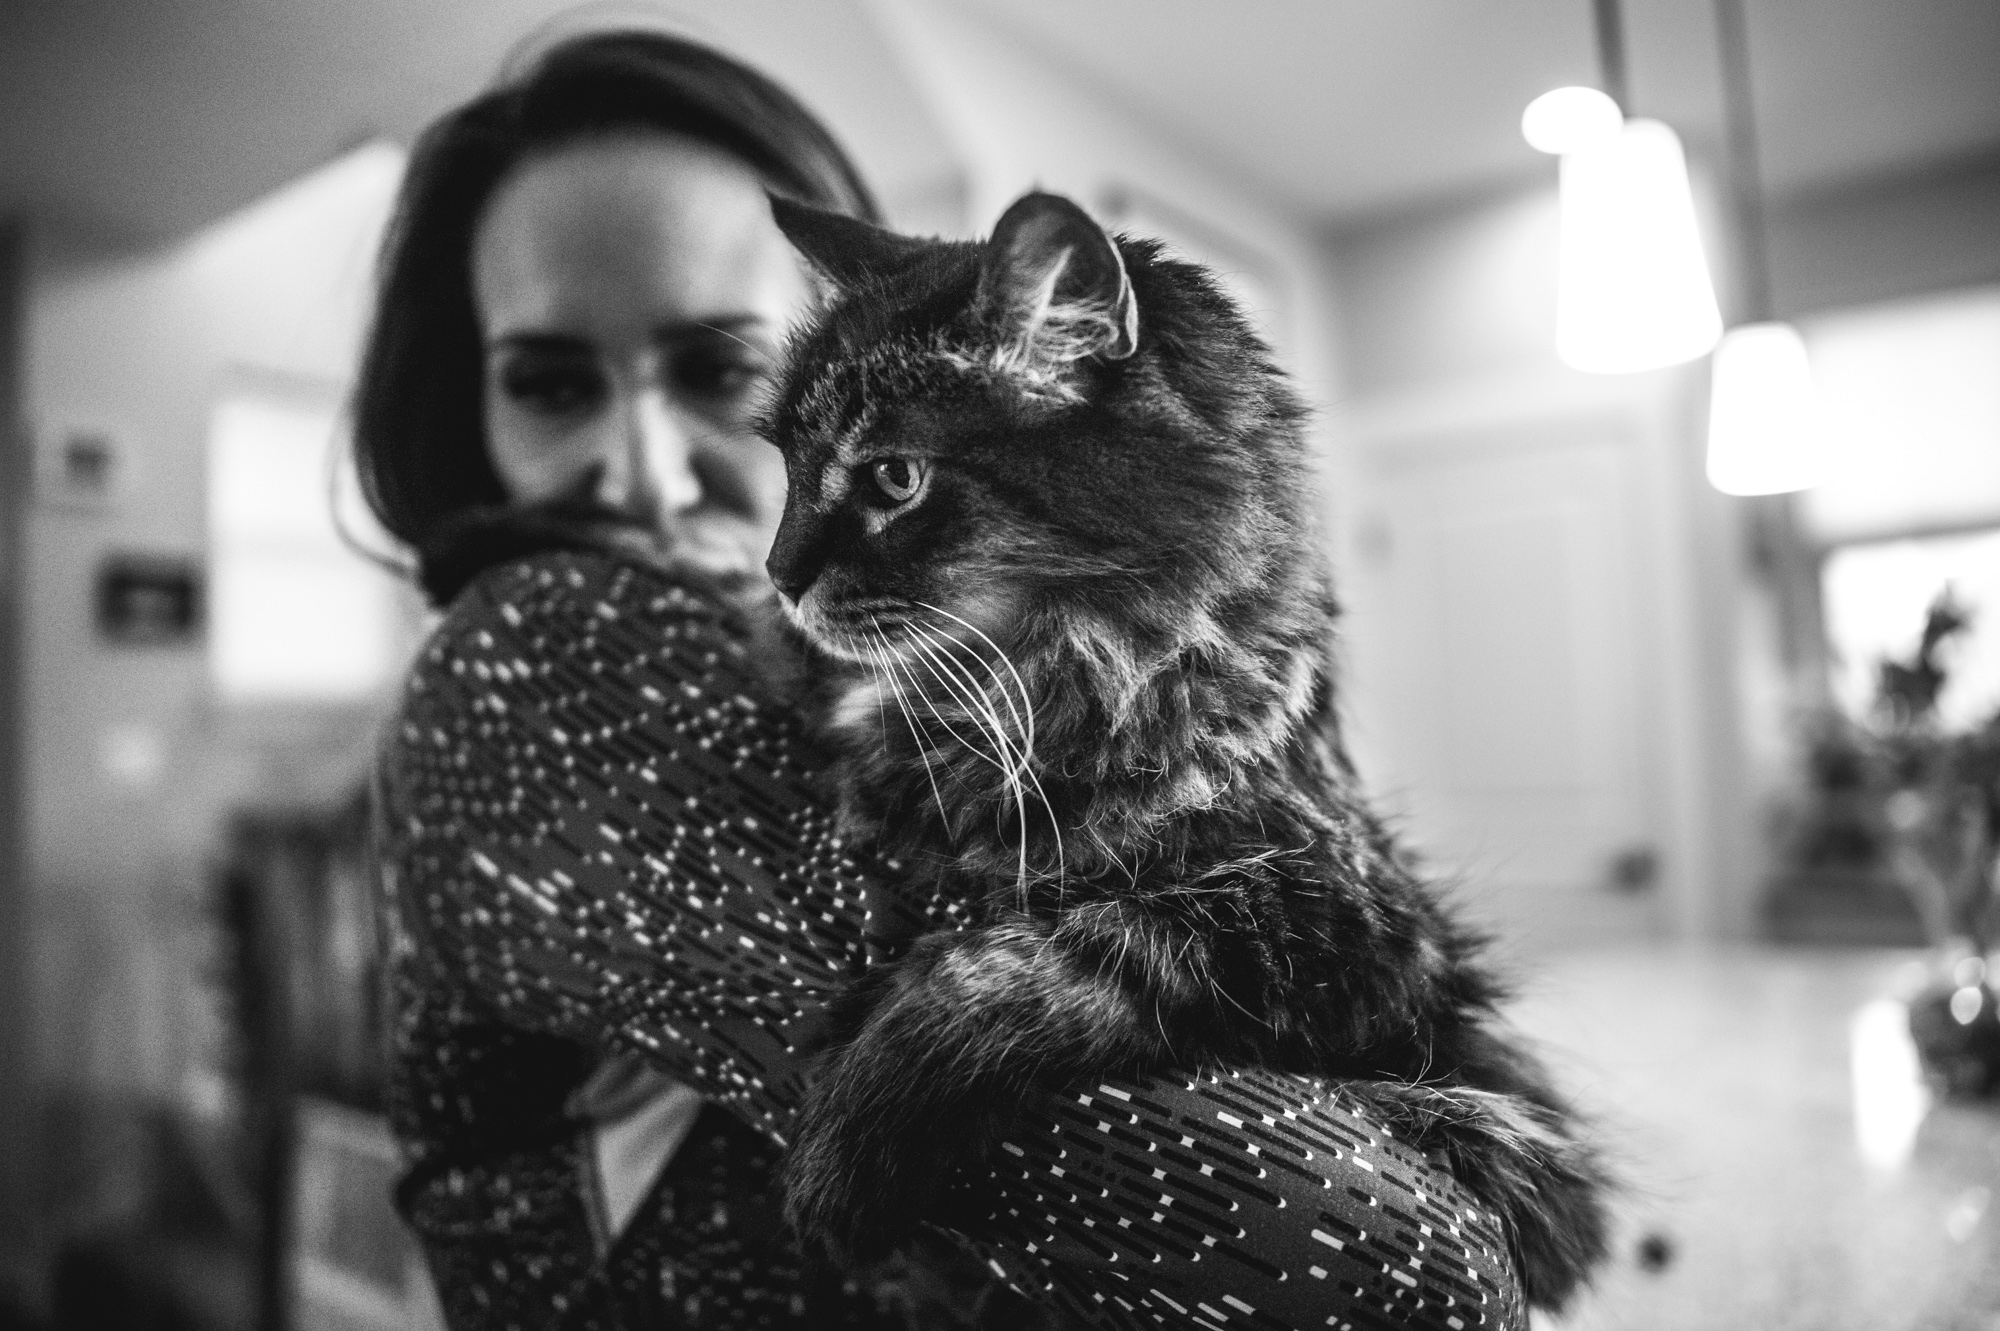 Woman holds her giant Maine Coon cat in their home in Stapleton, Colorado, black and white